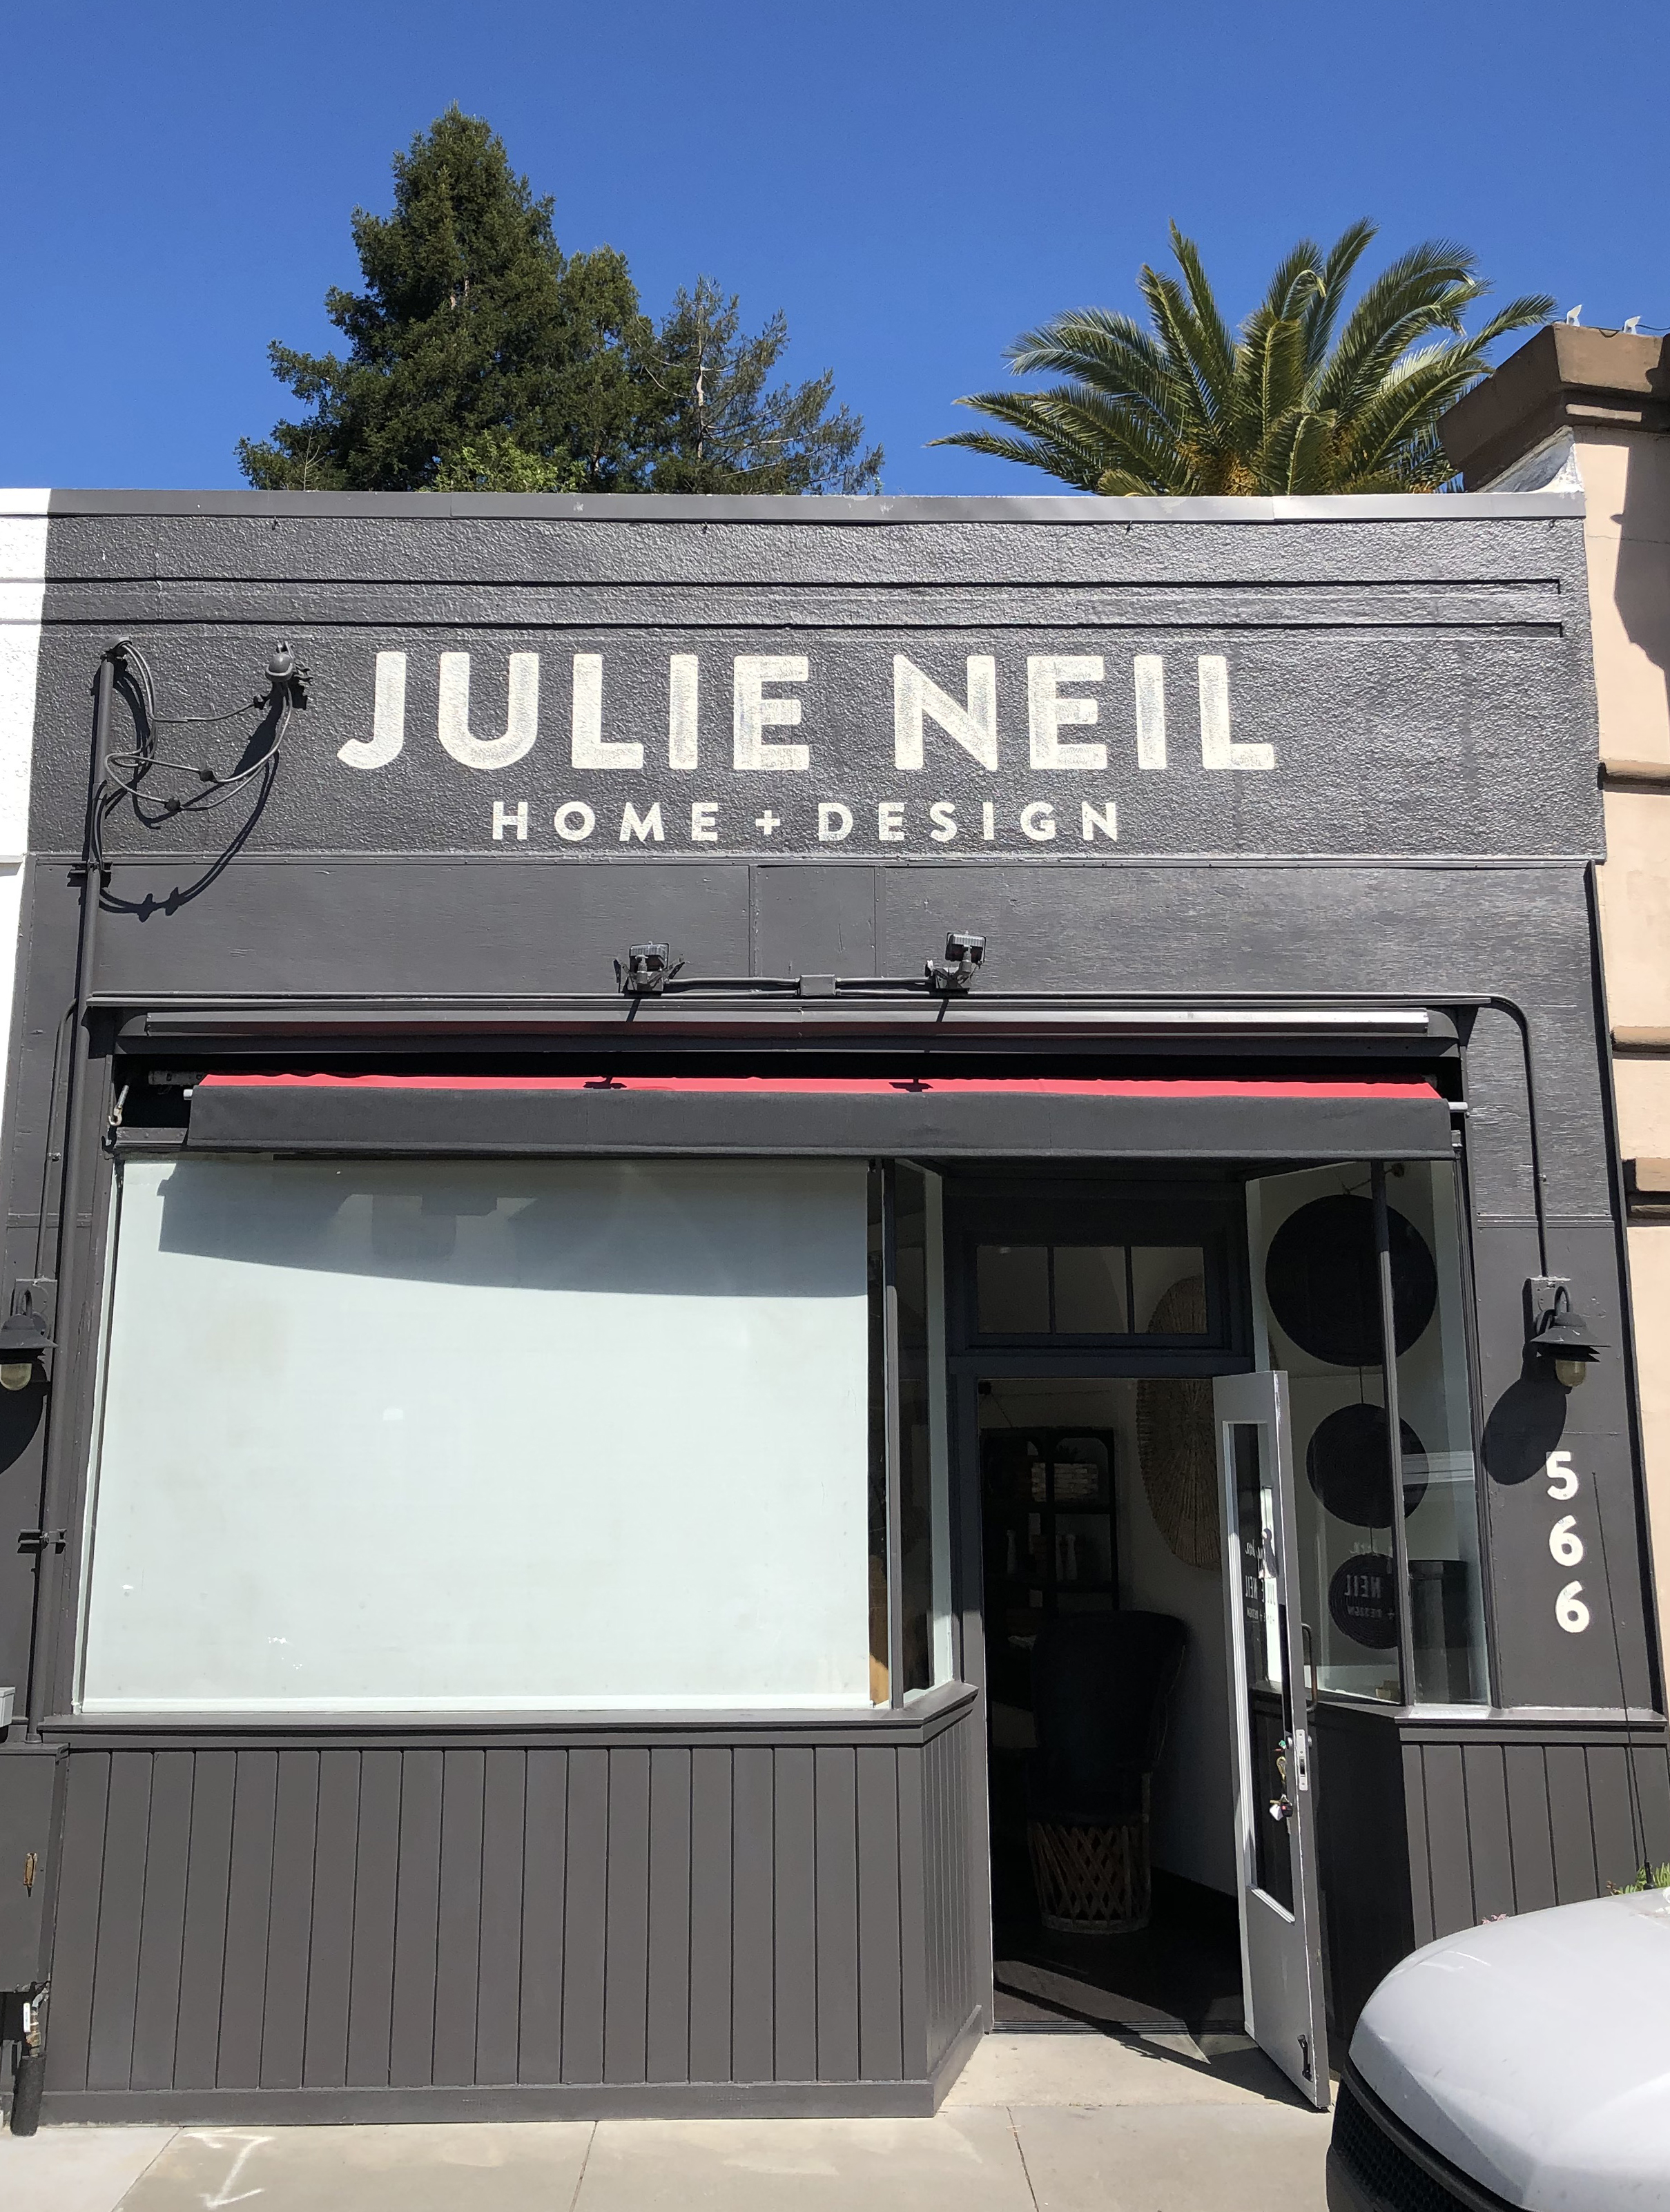 Julie Neil Home & Design